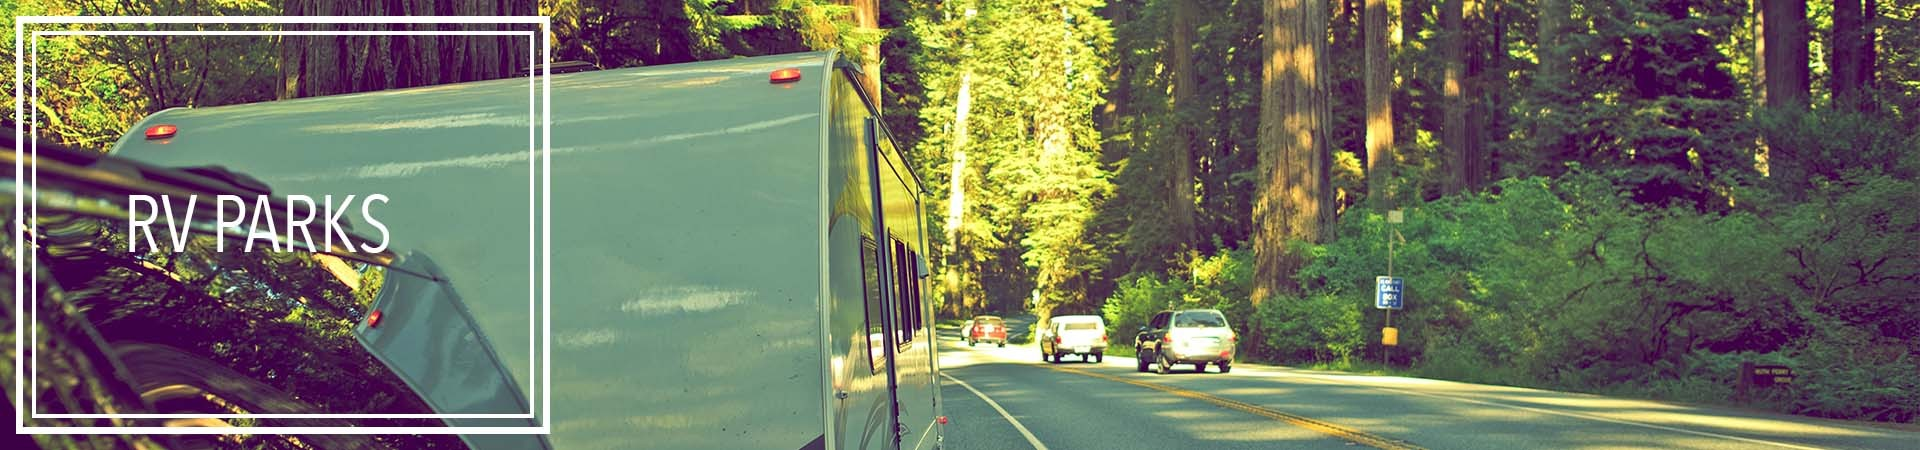 rv parks in the redwood forest